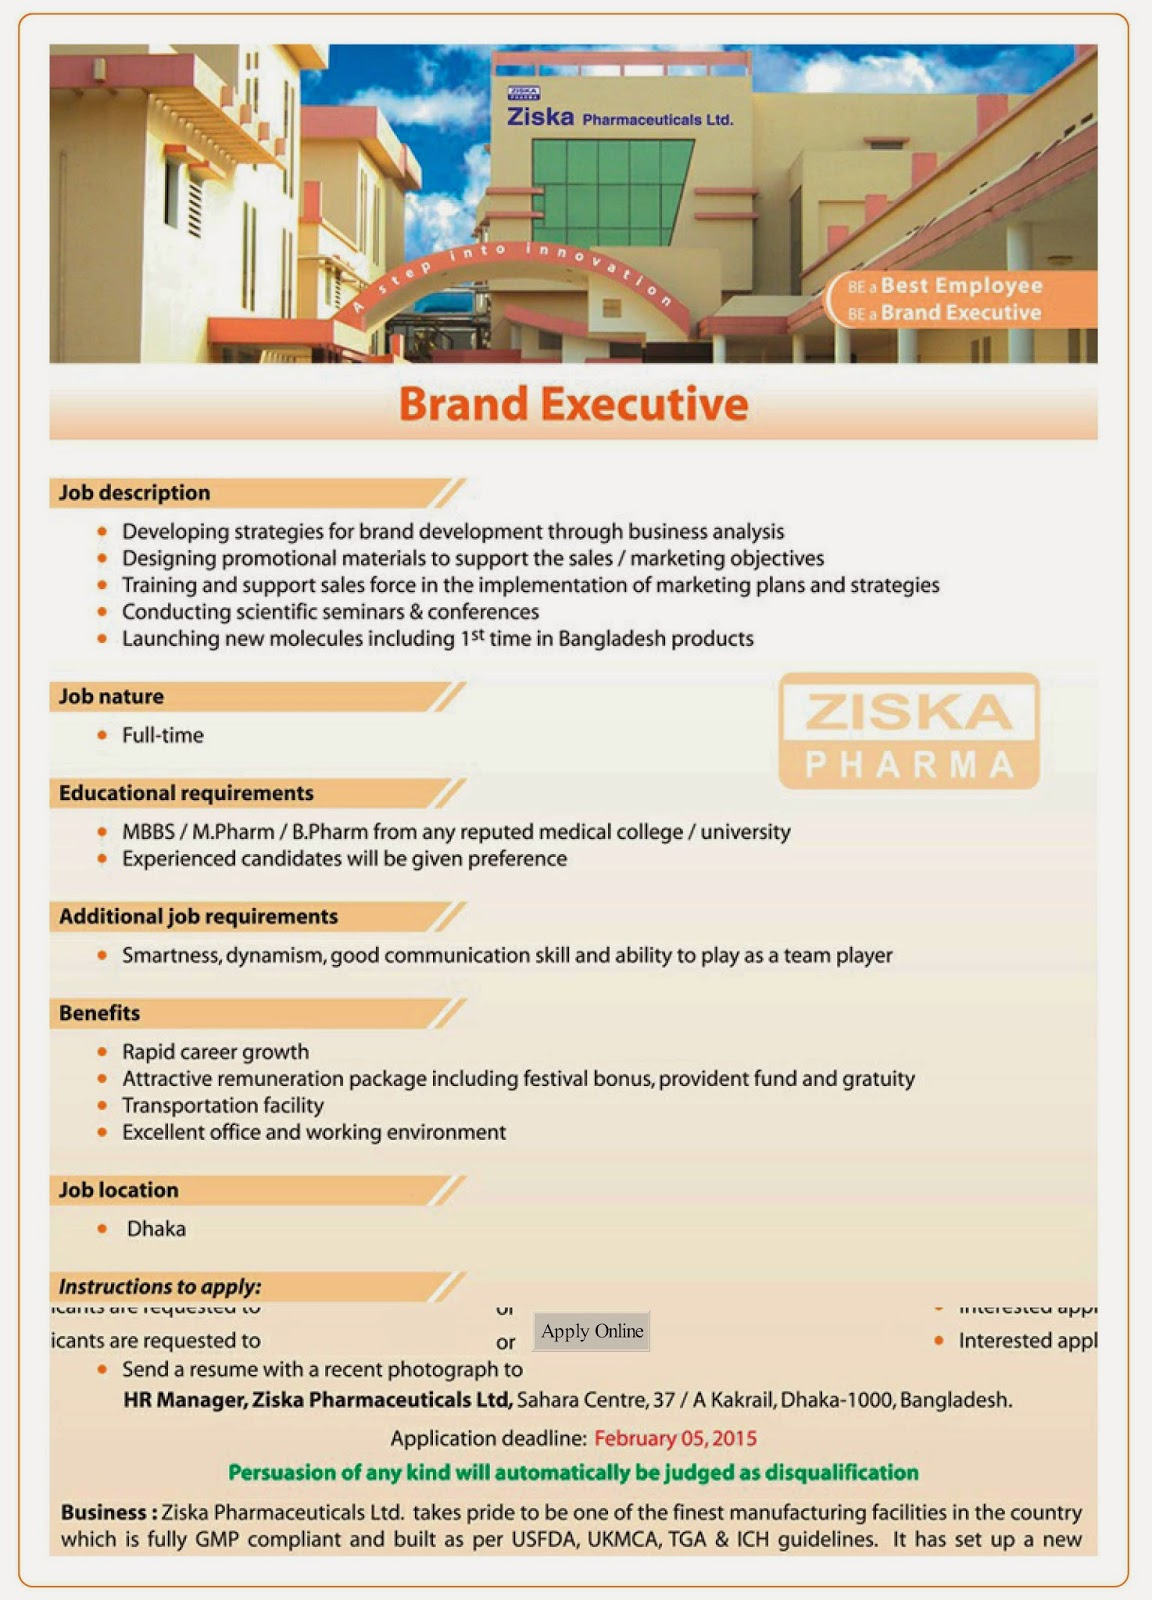 brand executive current pharmaceutical jobs job nature